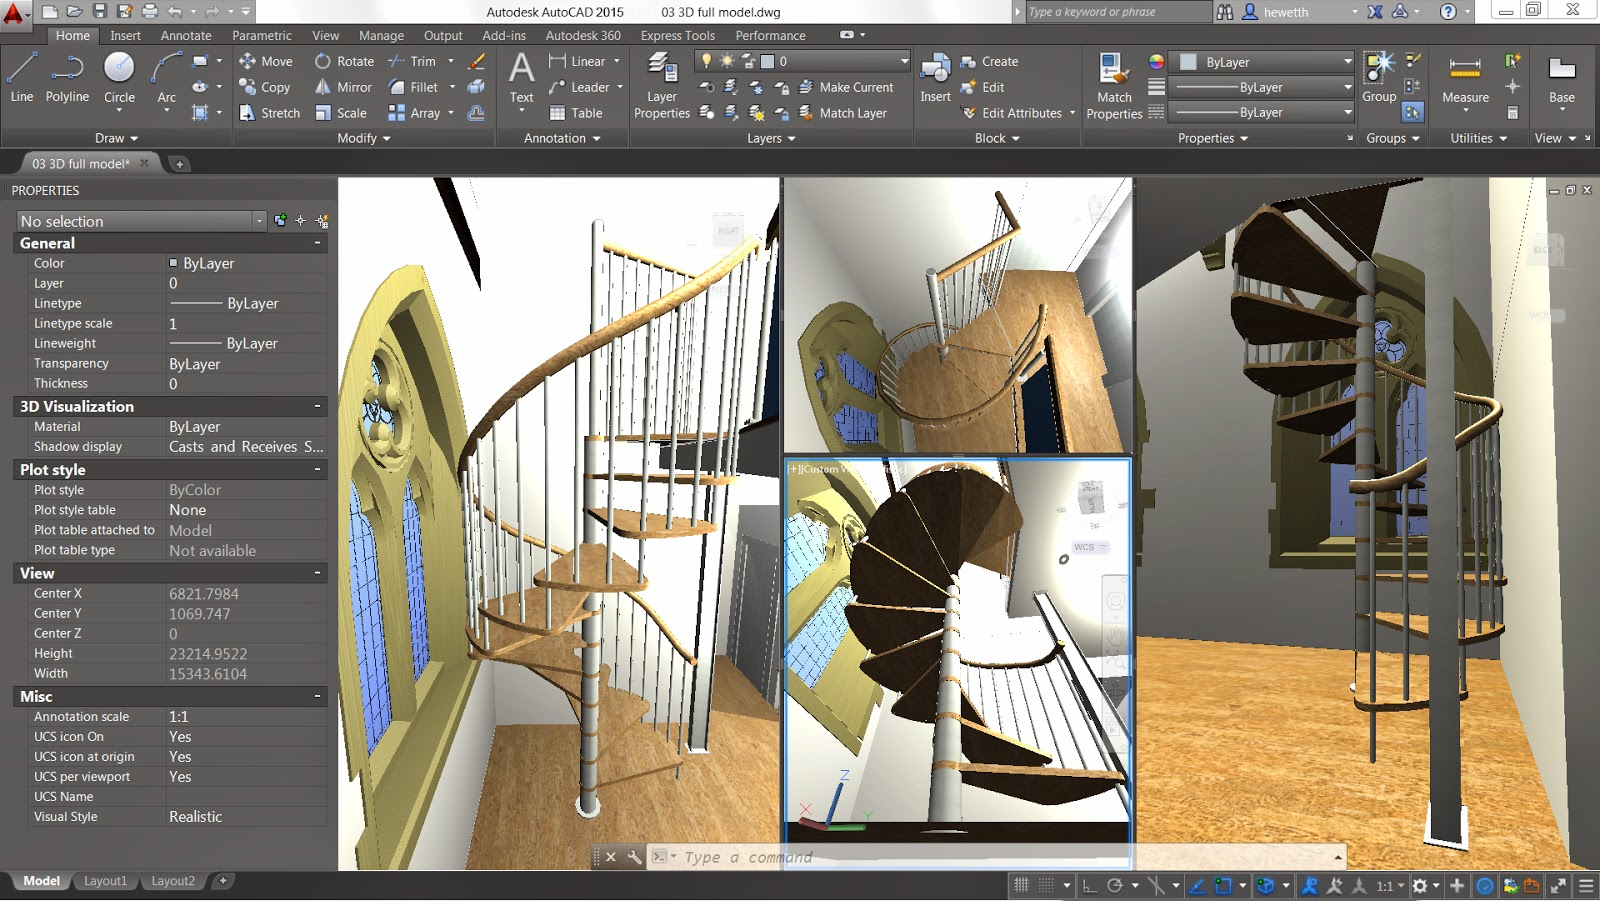 Autocad was used for rendering the remaining images - Model Space Viewport Controls